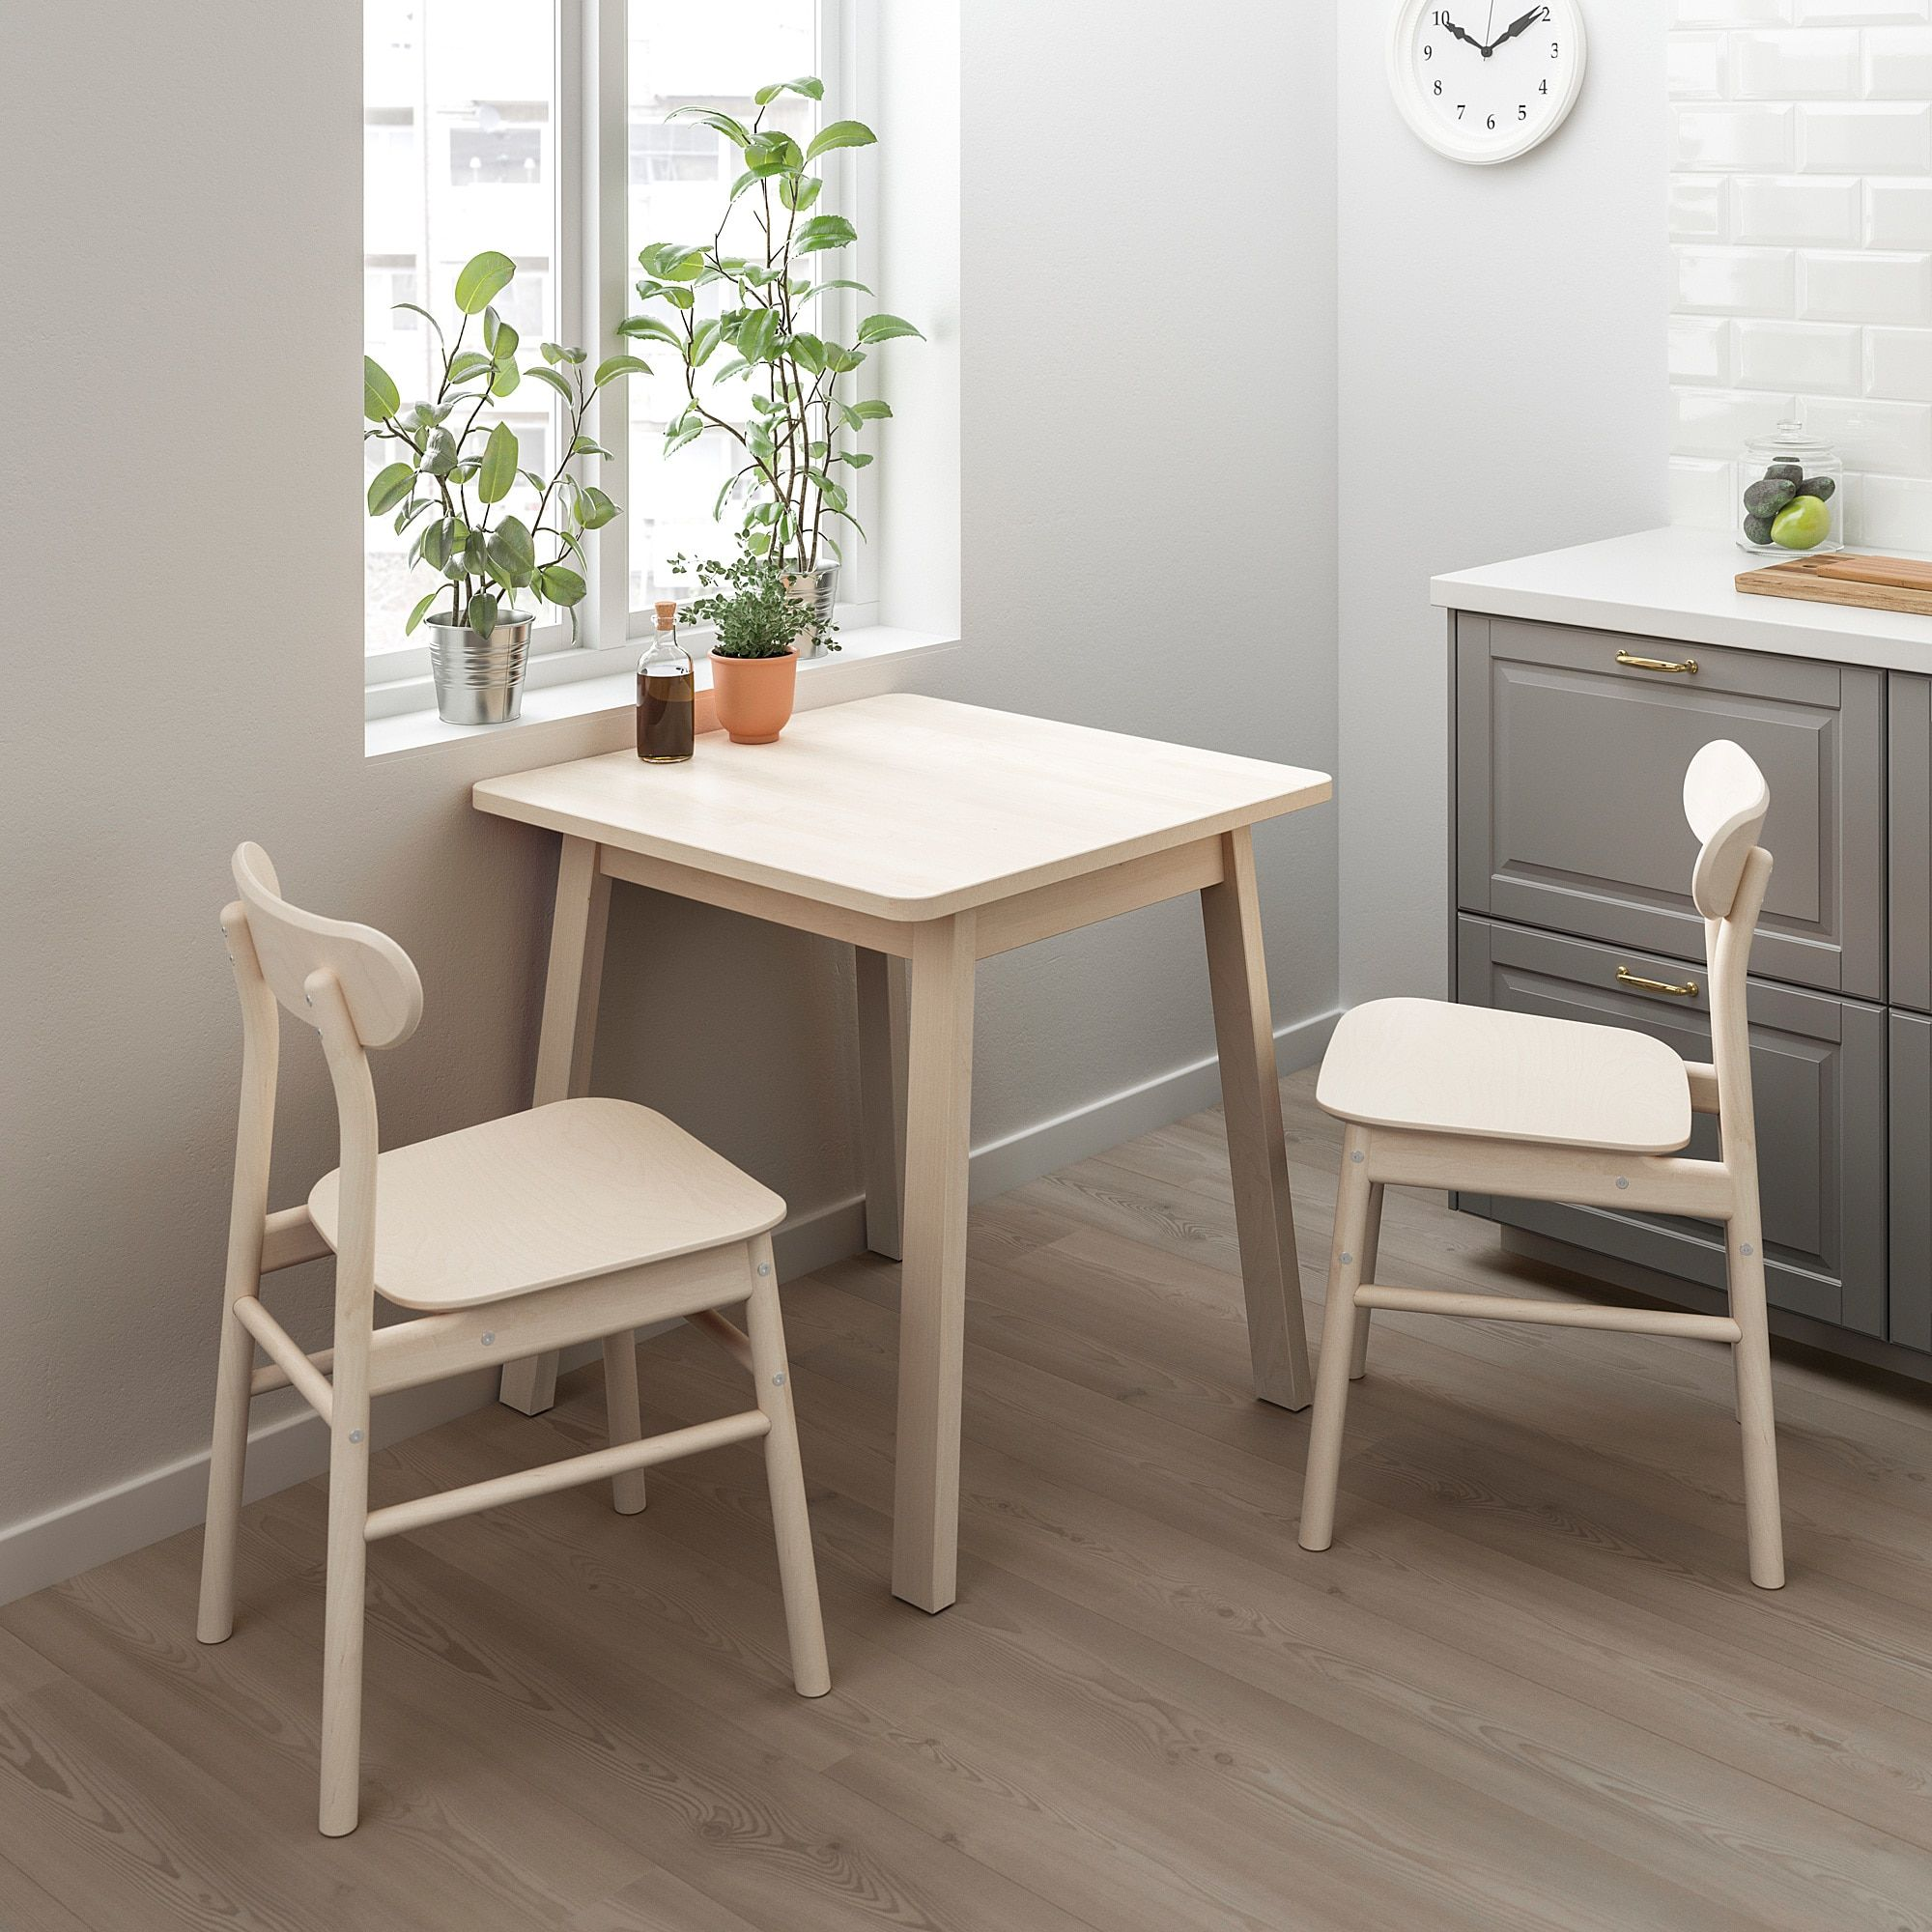 Ikea Norraker Table In 2020 Ikea Small Kitchen Tables Table